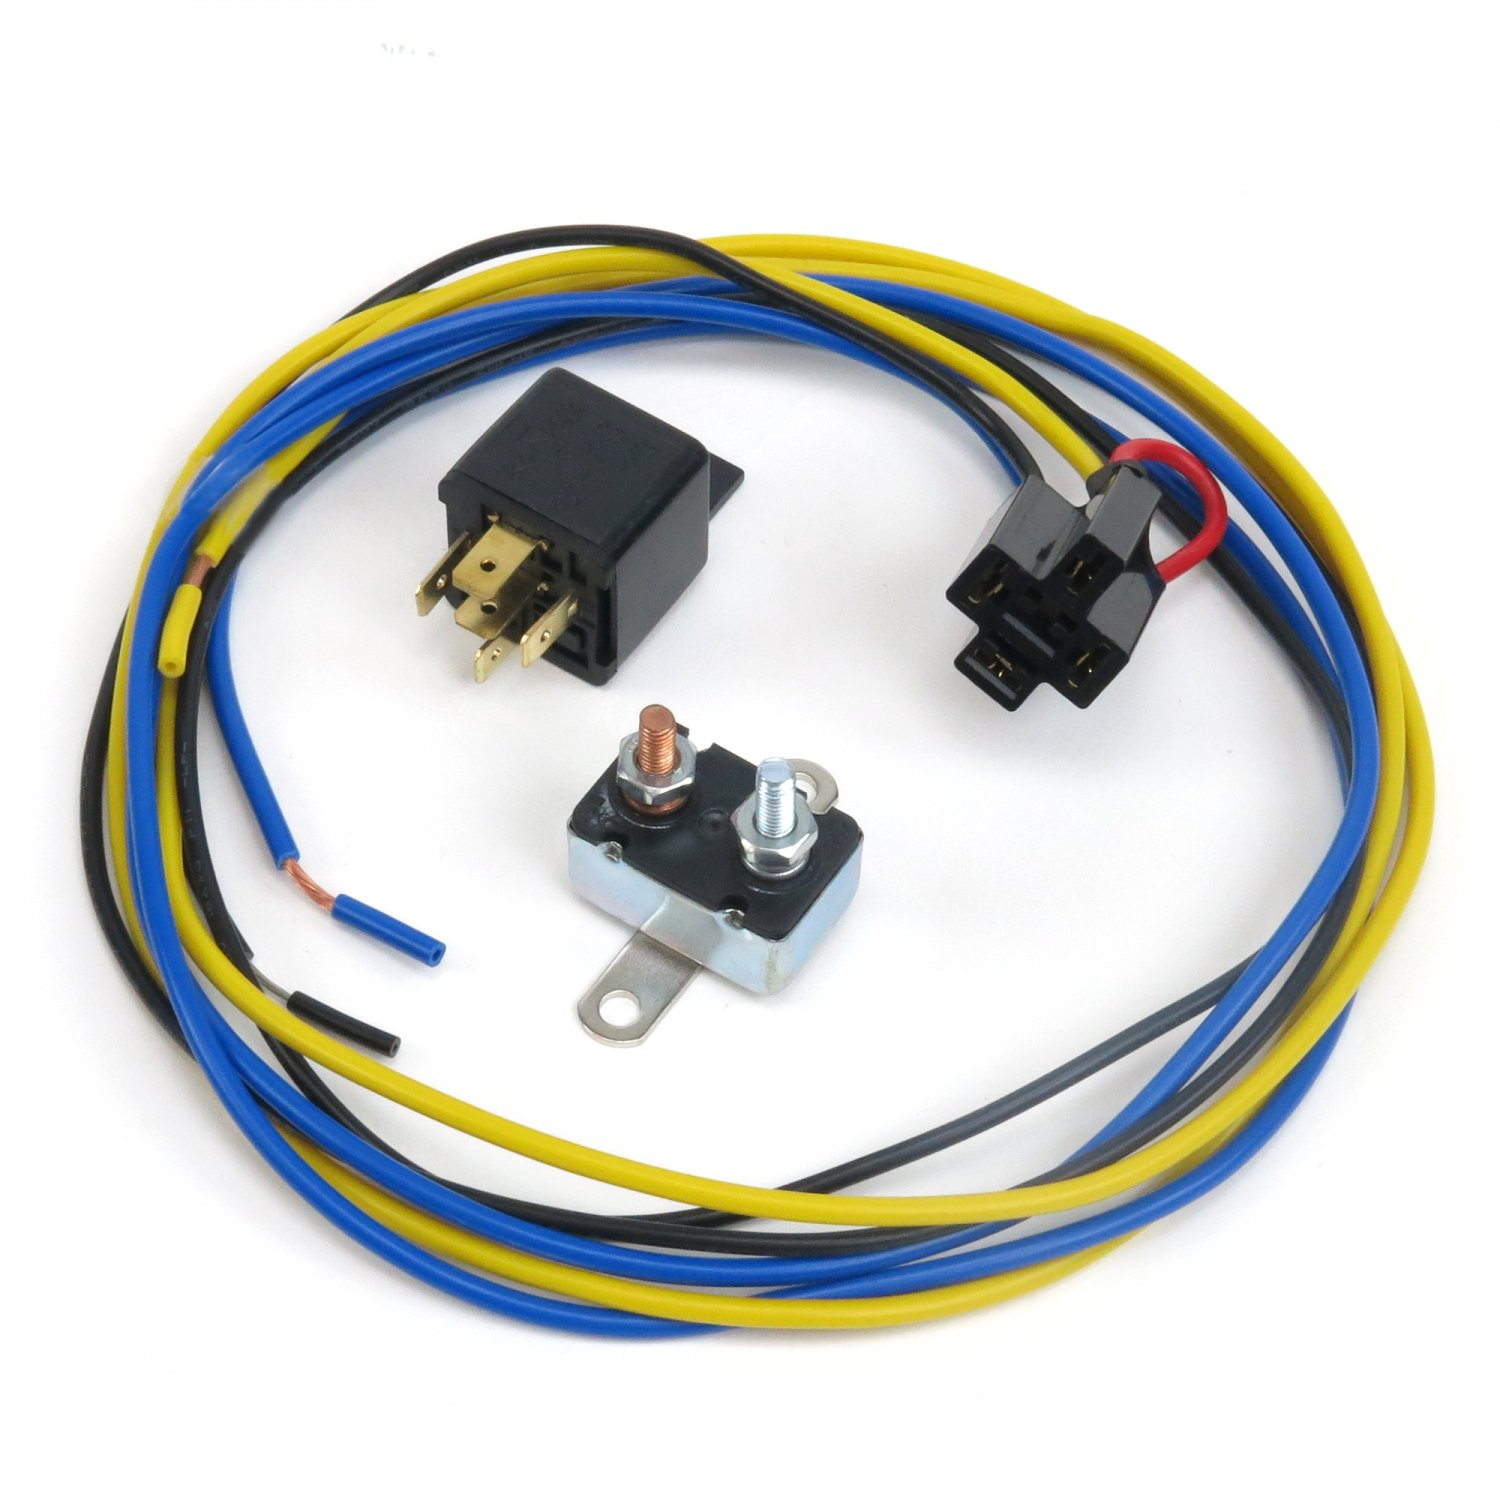 Universal Horn Relay W Plug In Harness Circuit Breaker 12v Hot Rod Wiring Connector Plugs Accessories